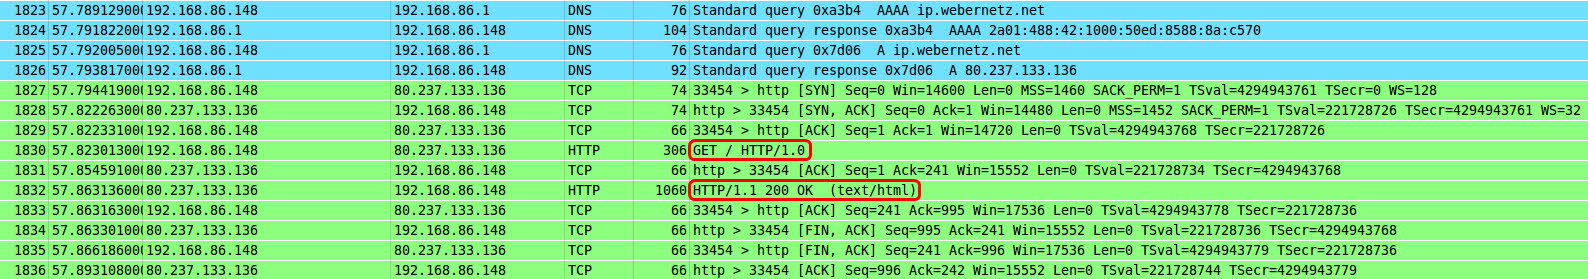 ip.webernetz.net_Wireshark